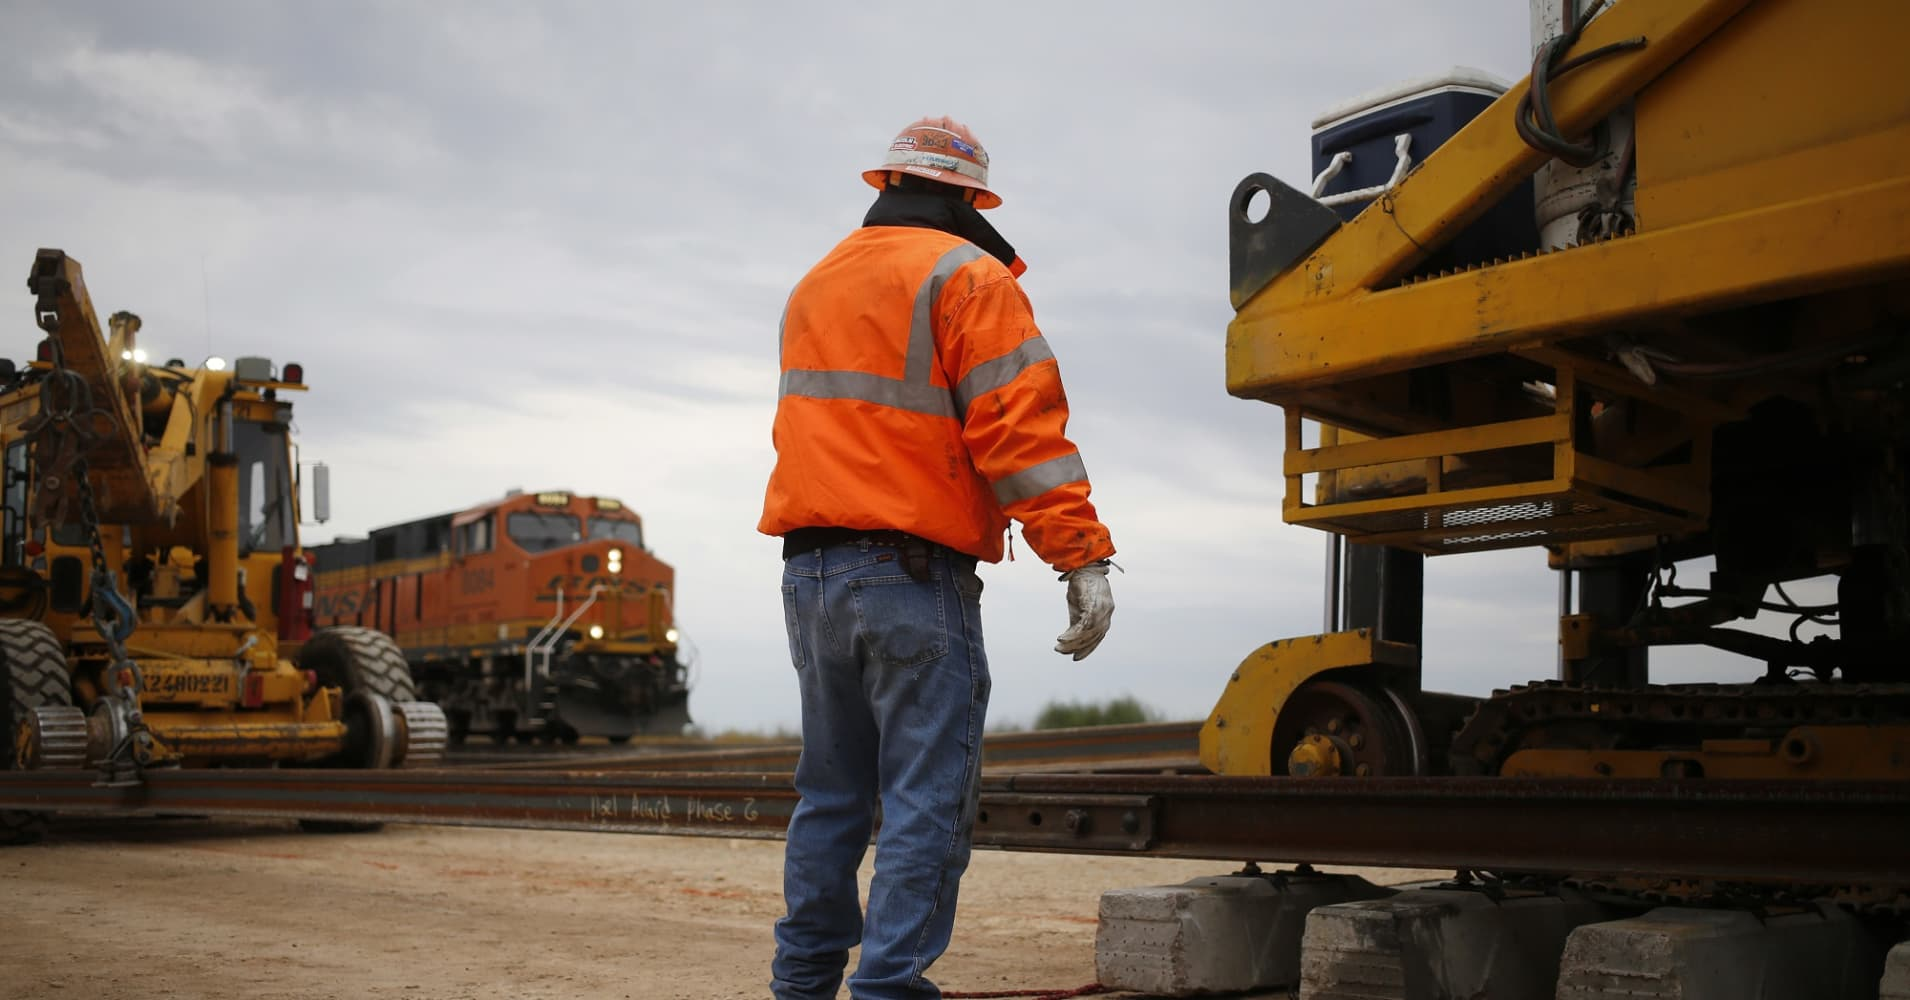 A maintenance-of-way worker watches as an eastbound freight train passes by his track gang in Alva, Oklahoma.